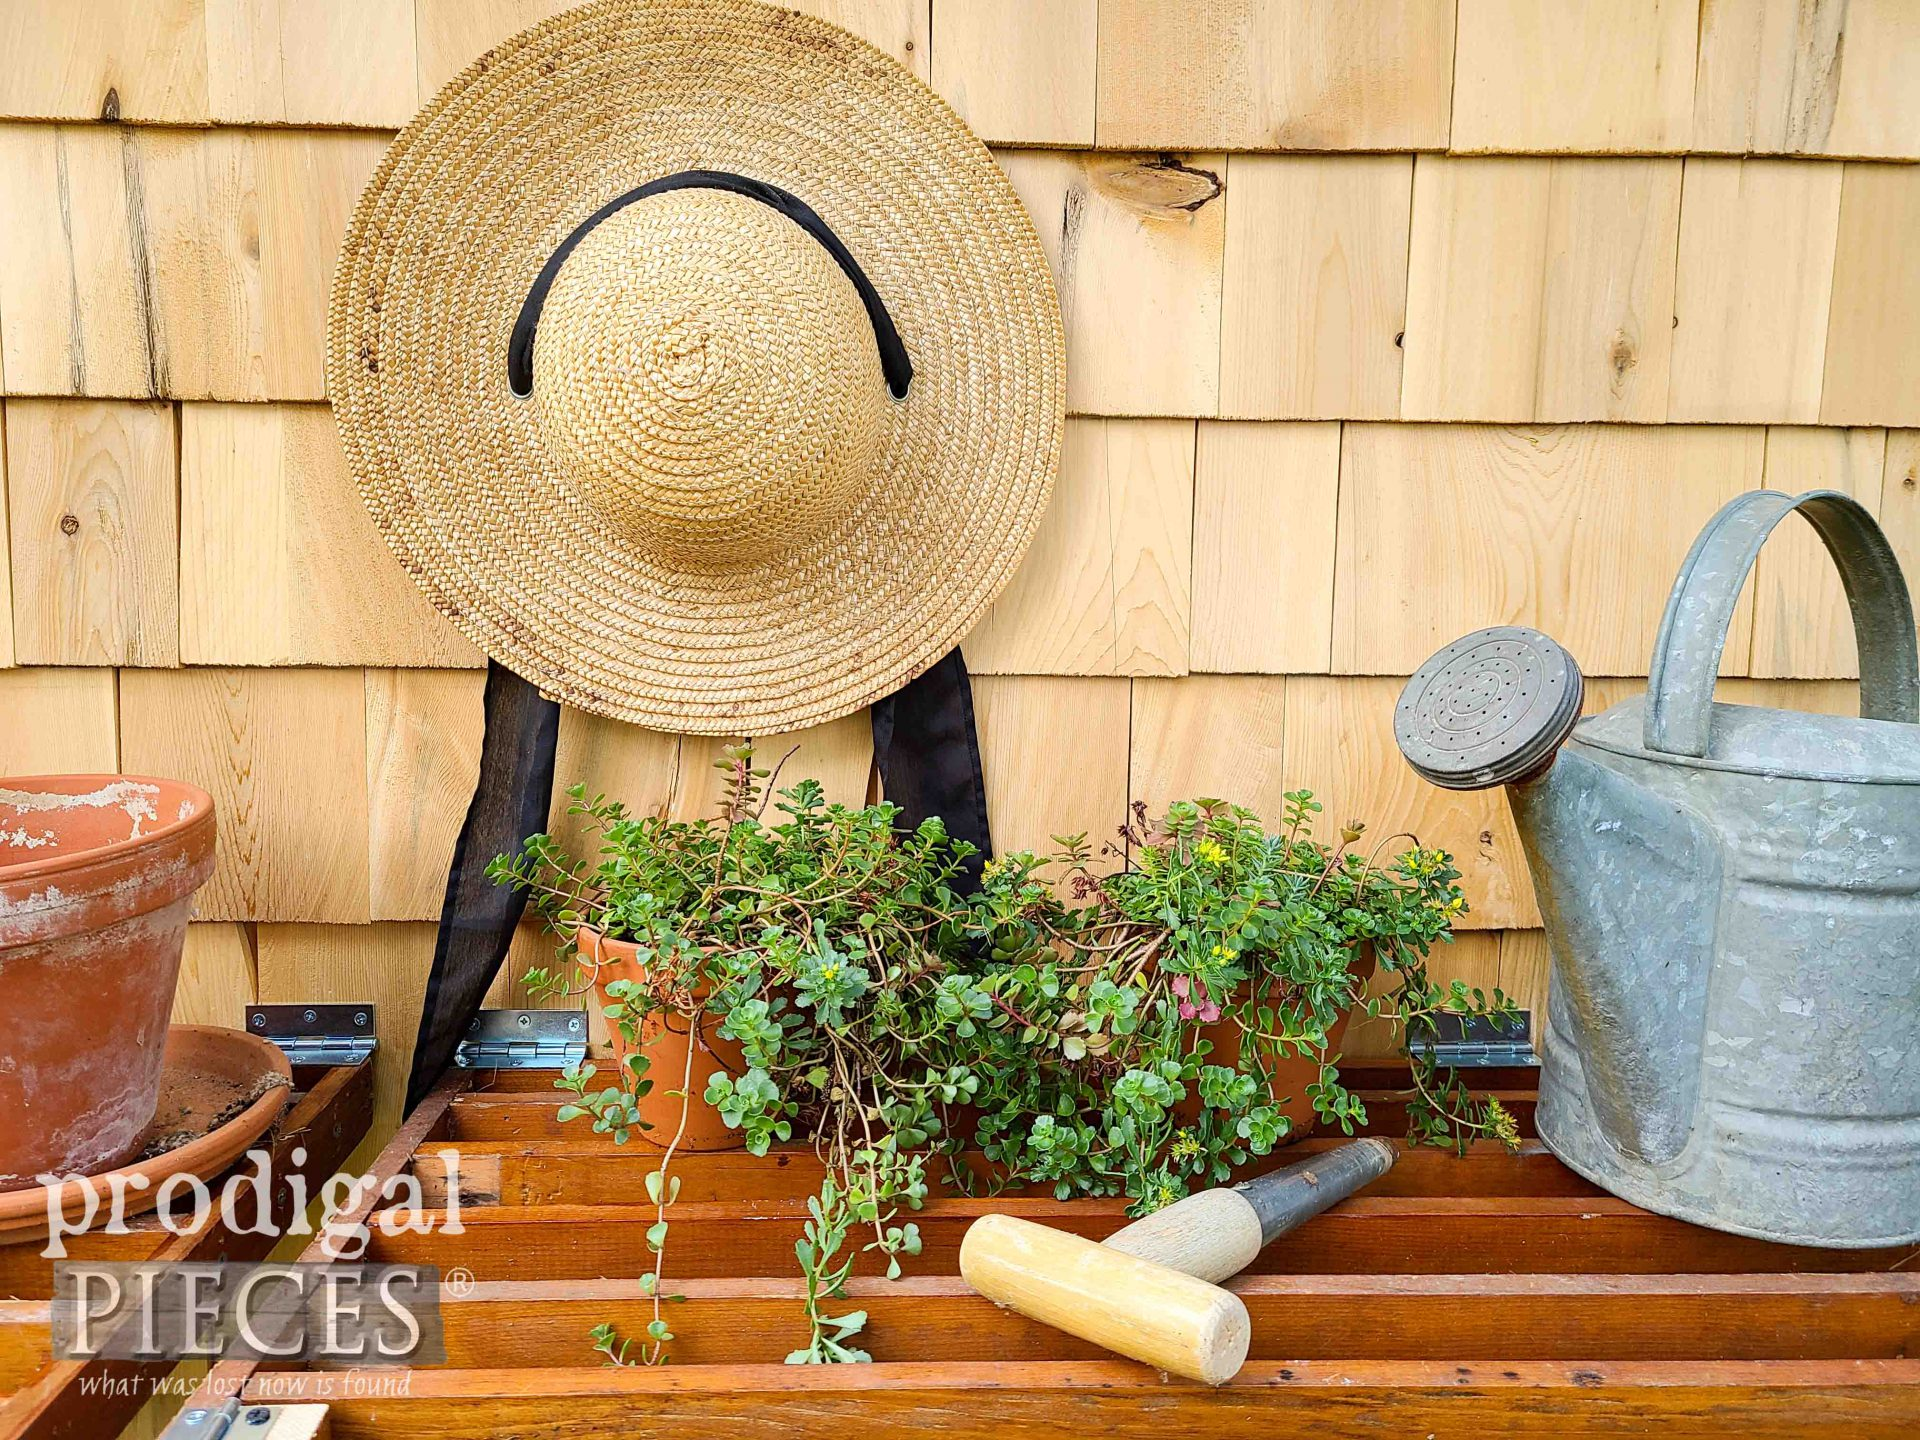 Simple Garden Living by Larissa of Prodigal Pieces | prodigalpieces.com #prodigalpieces #garden #